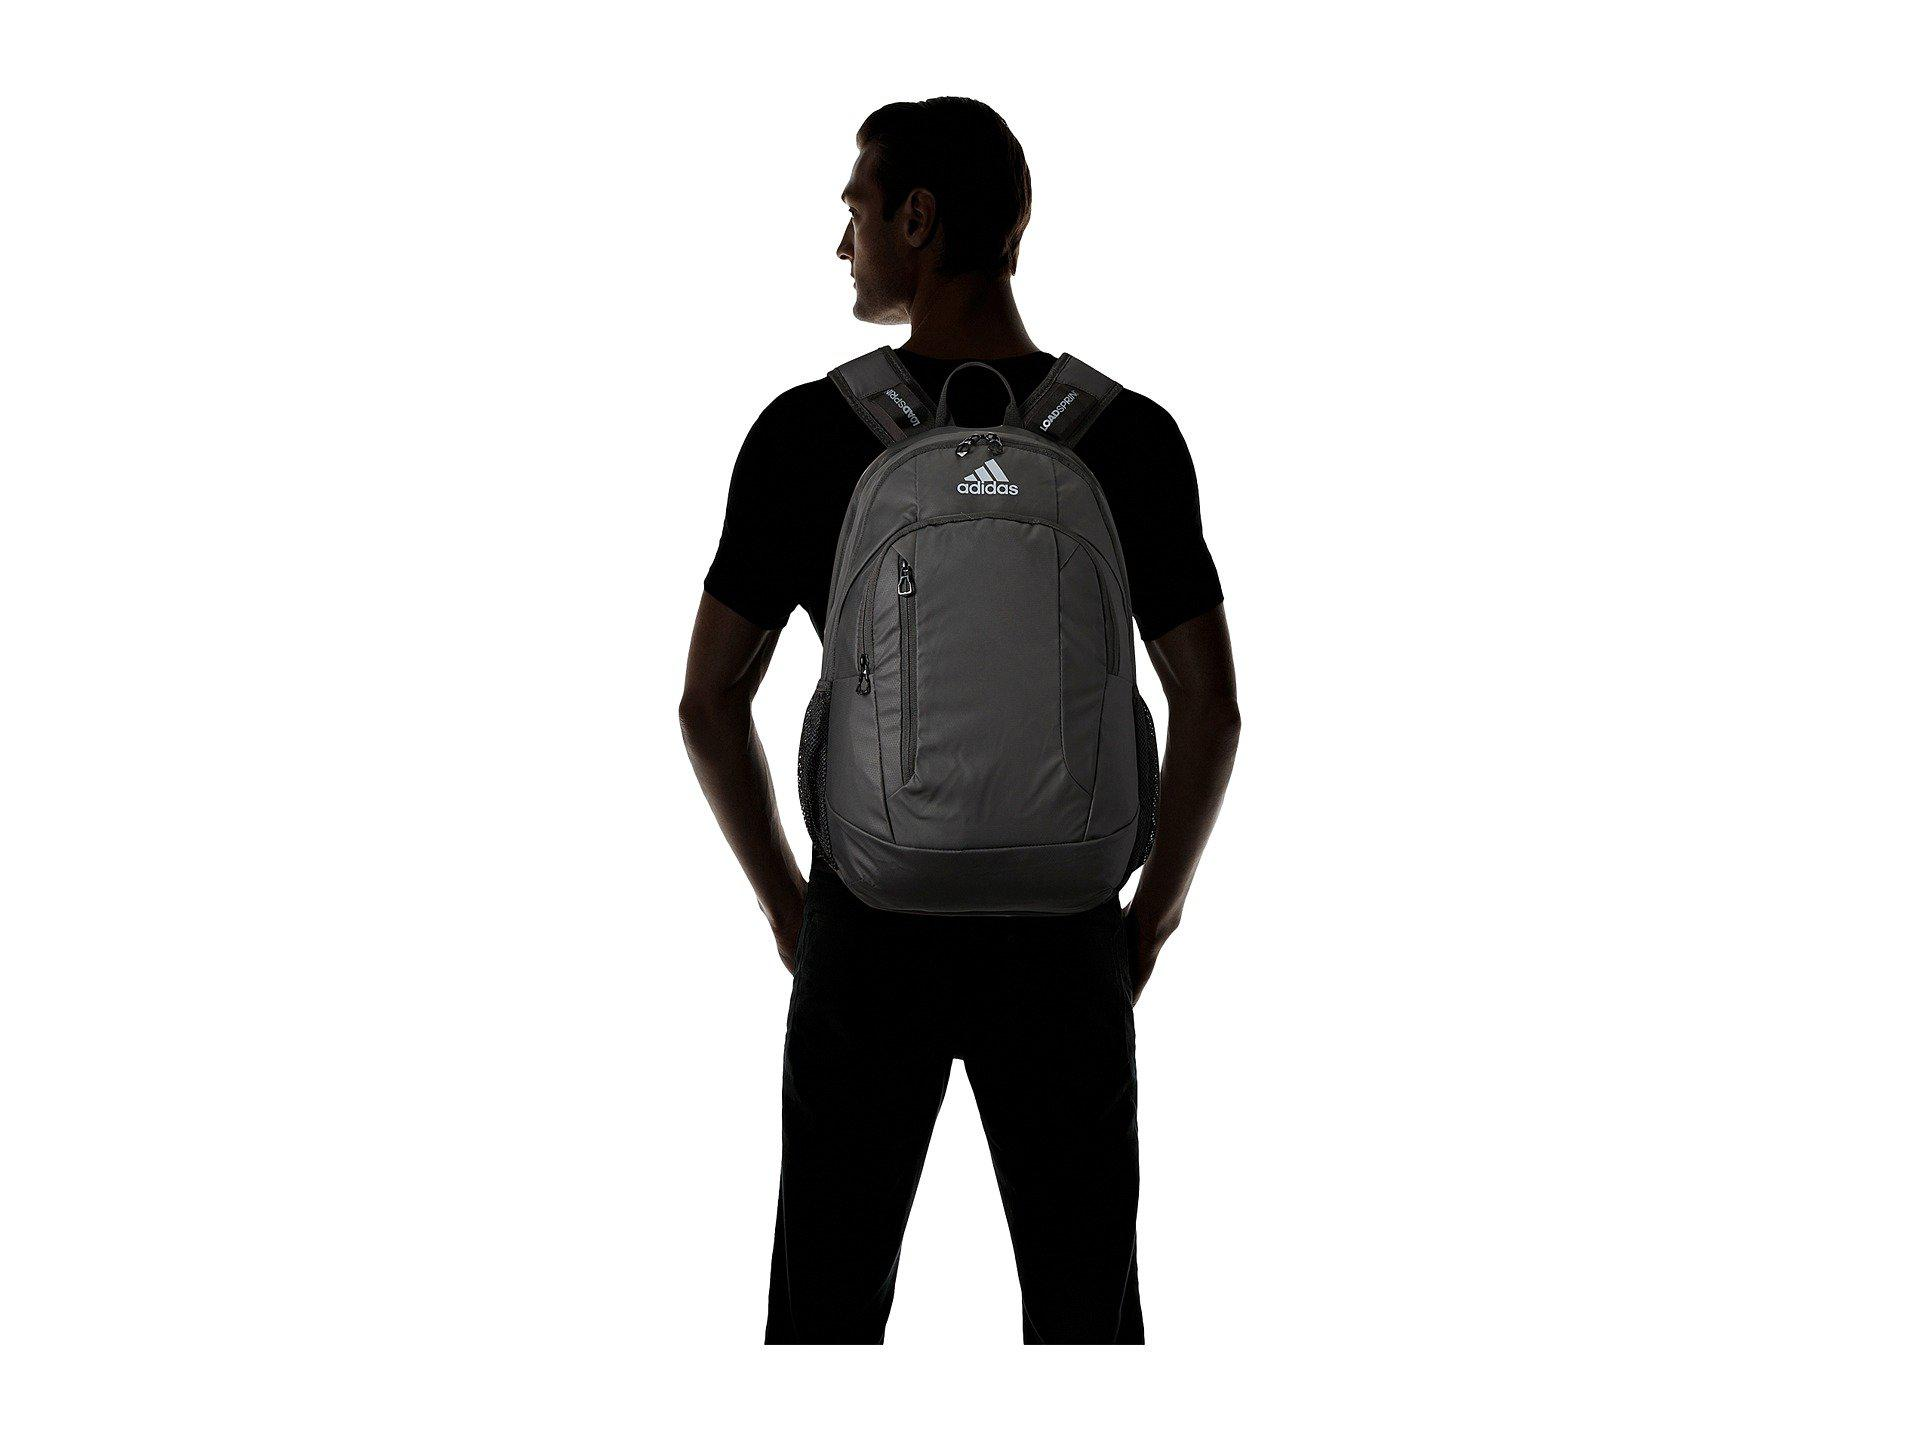 742ea6c03d1 adidas Mission Plus Backpack in Black - Lyst